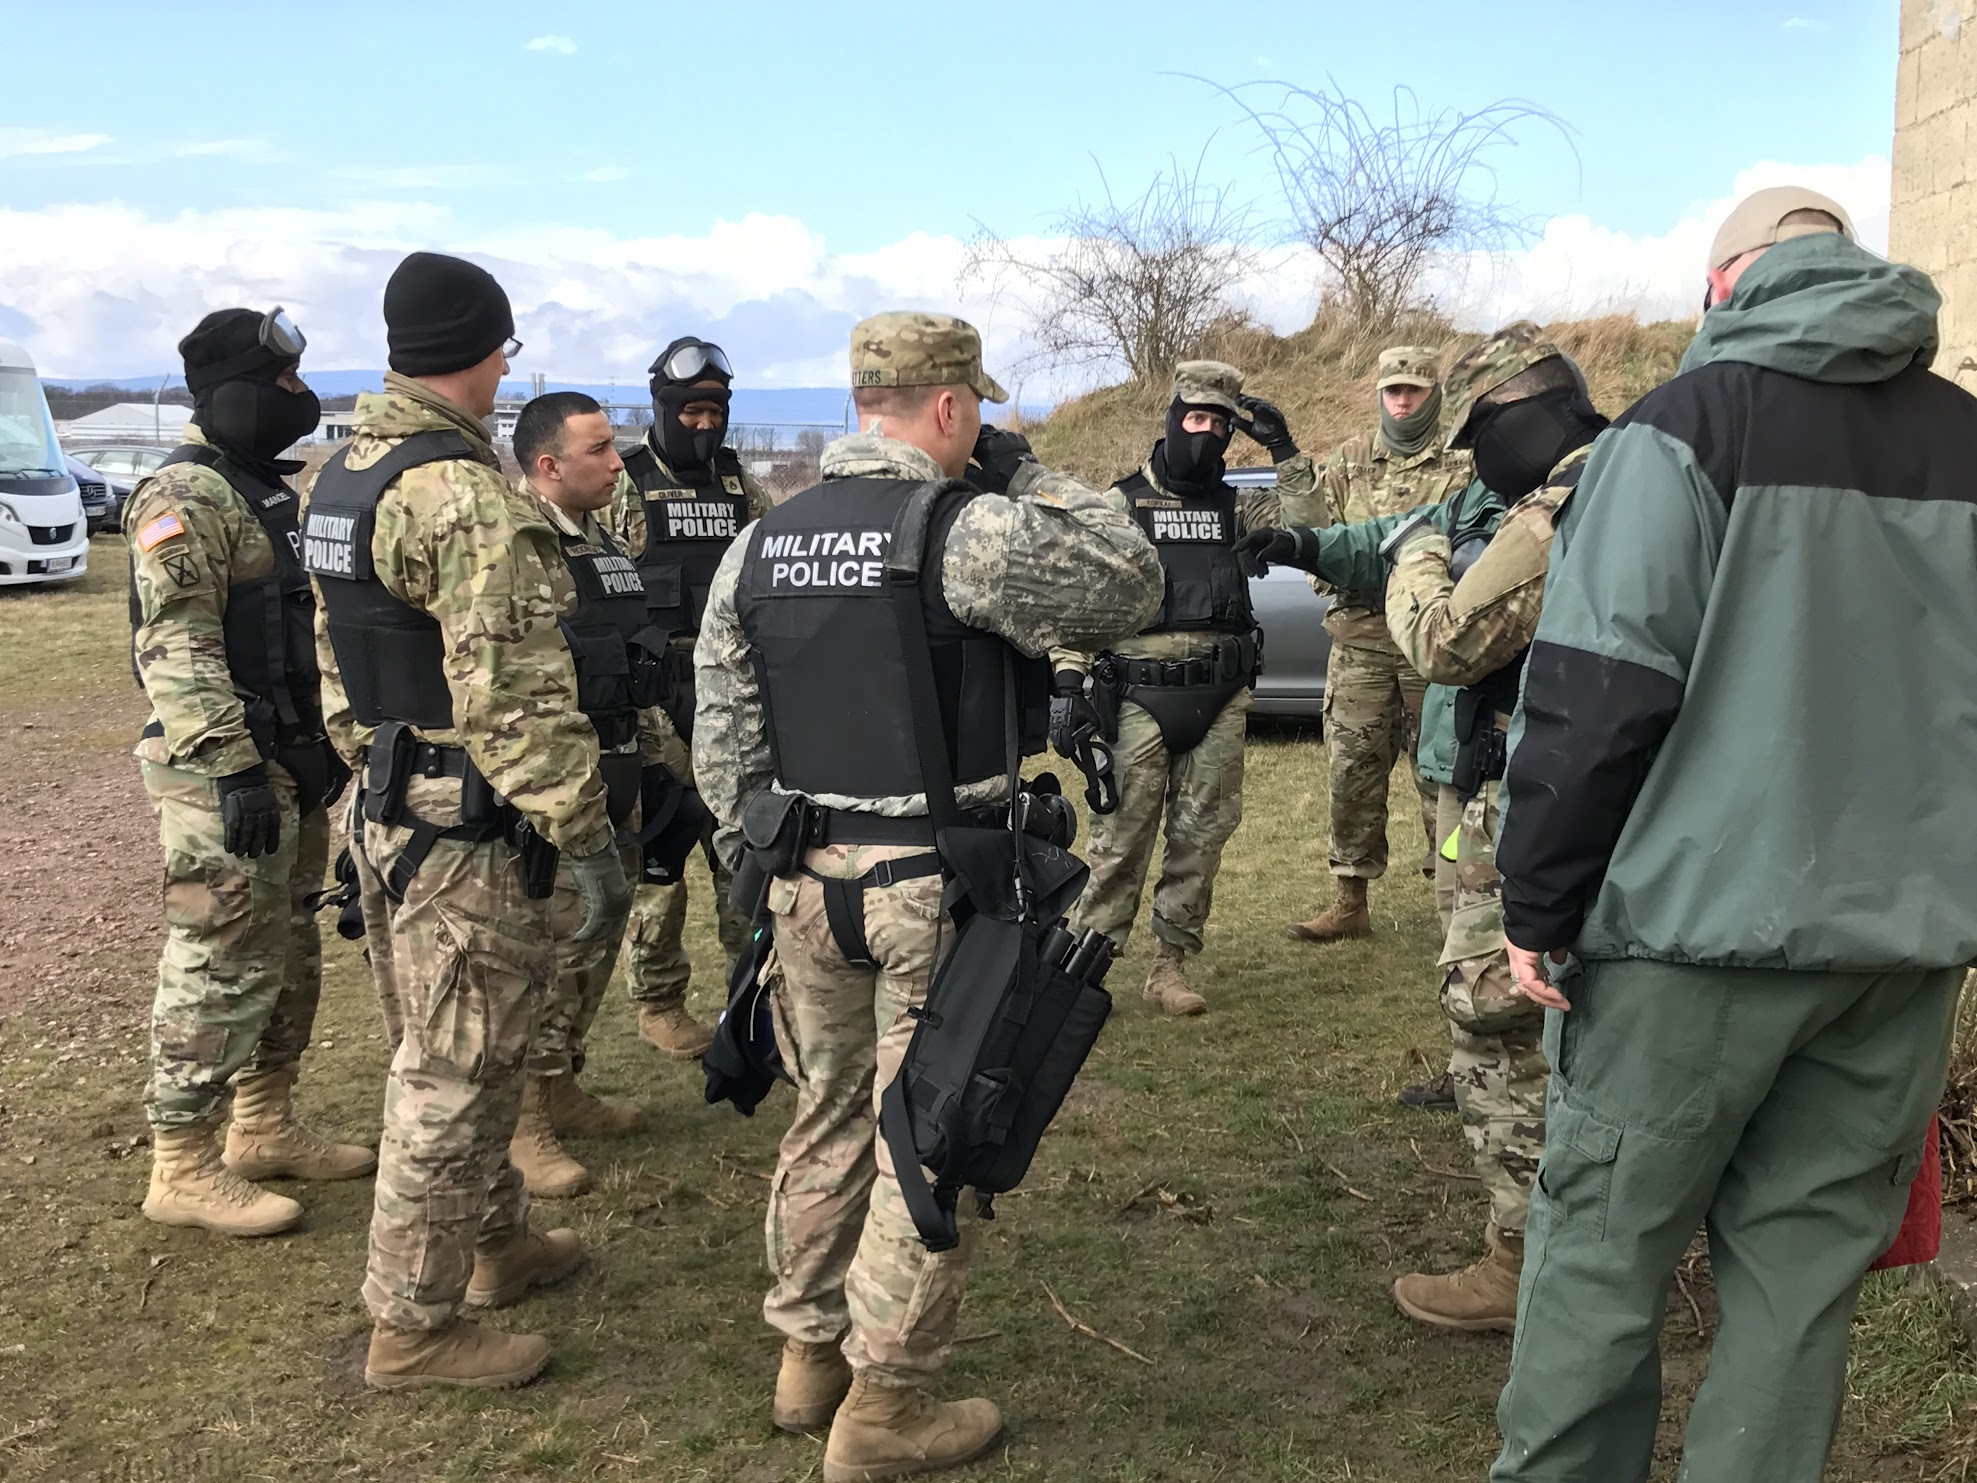 Joe Willis and Tim Sharpee doing an After Action Review with Military Police Soldiers following a scenario that required breaching, low light, and TC3 tactics.